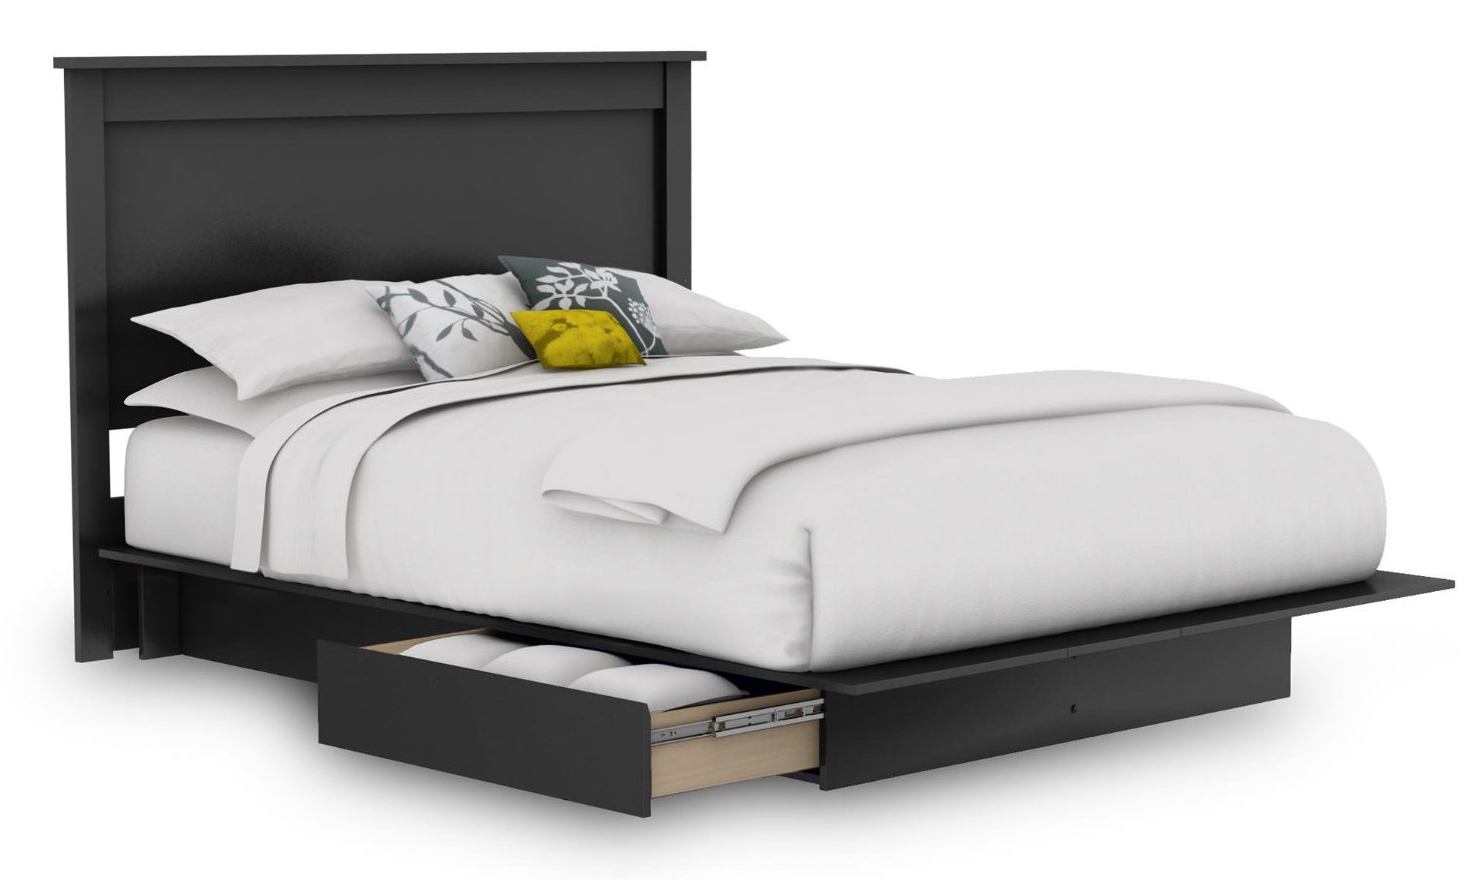 Queen Platform Bed Frame With Headboard And Storage Drawers In Black